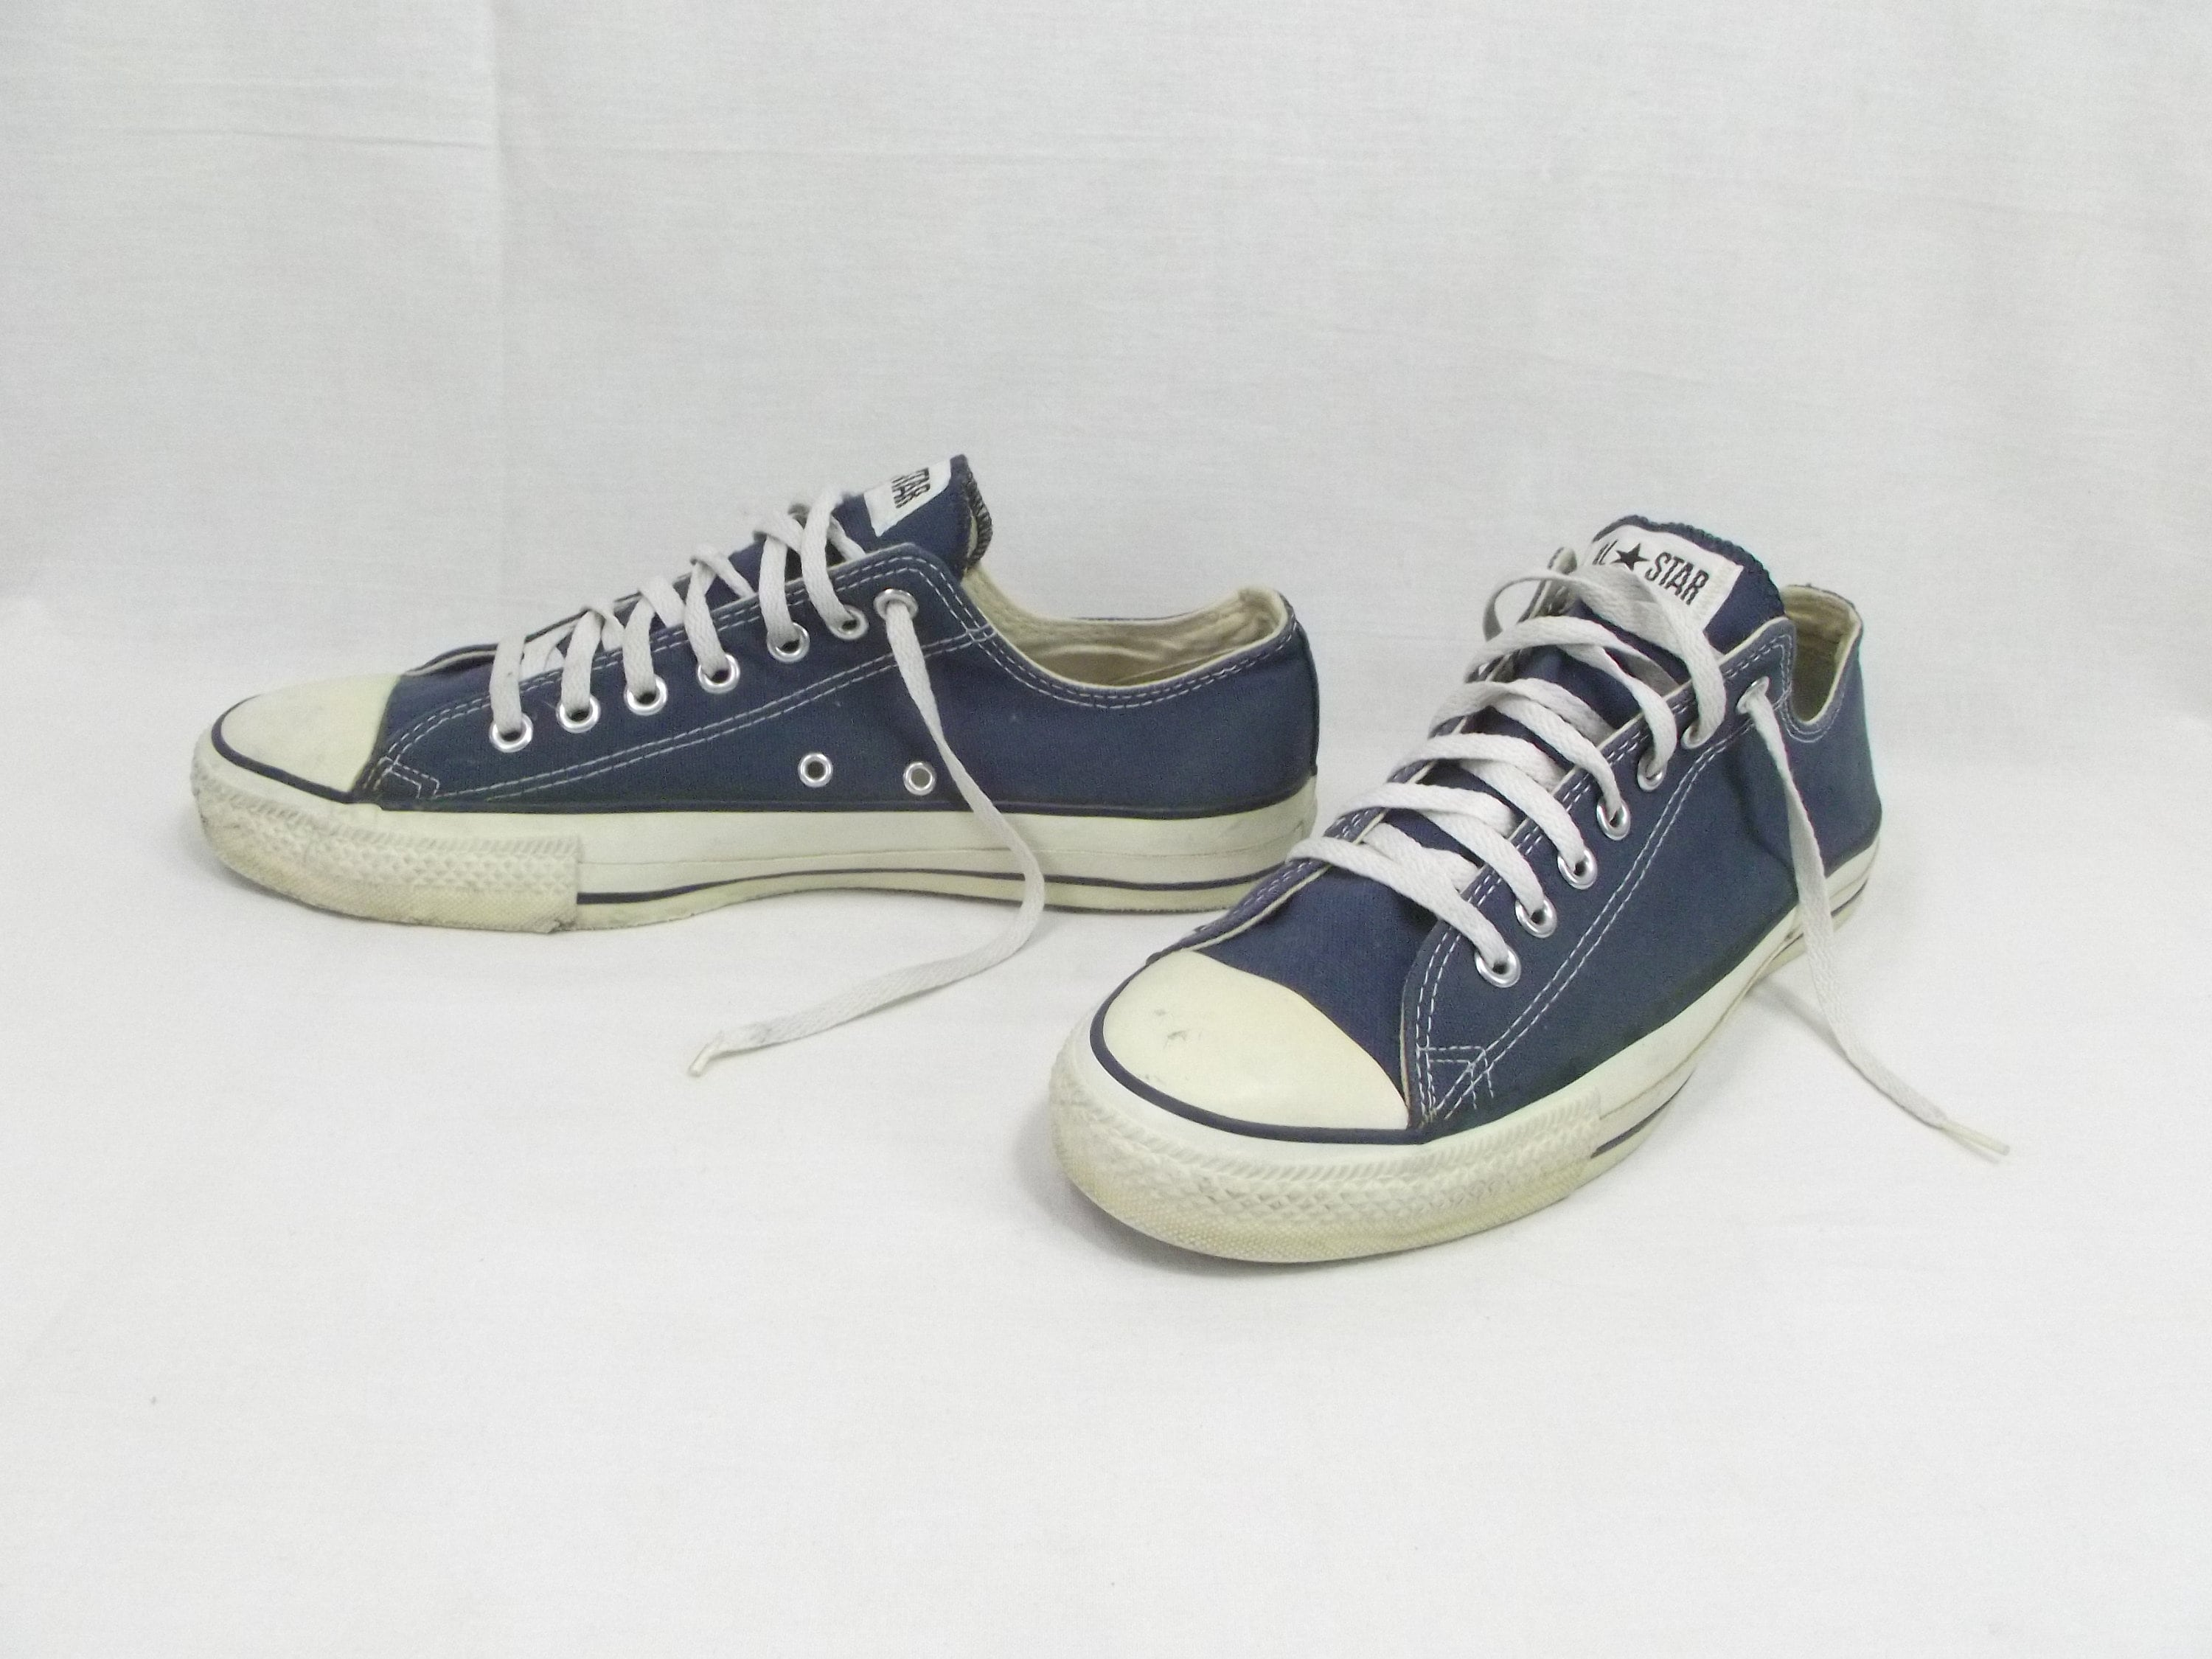 37f8ee2d2d0f Vintage USA Converse All Star Chuck Taylor Size us 10.5 uk